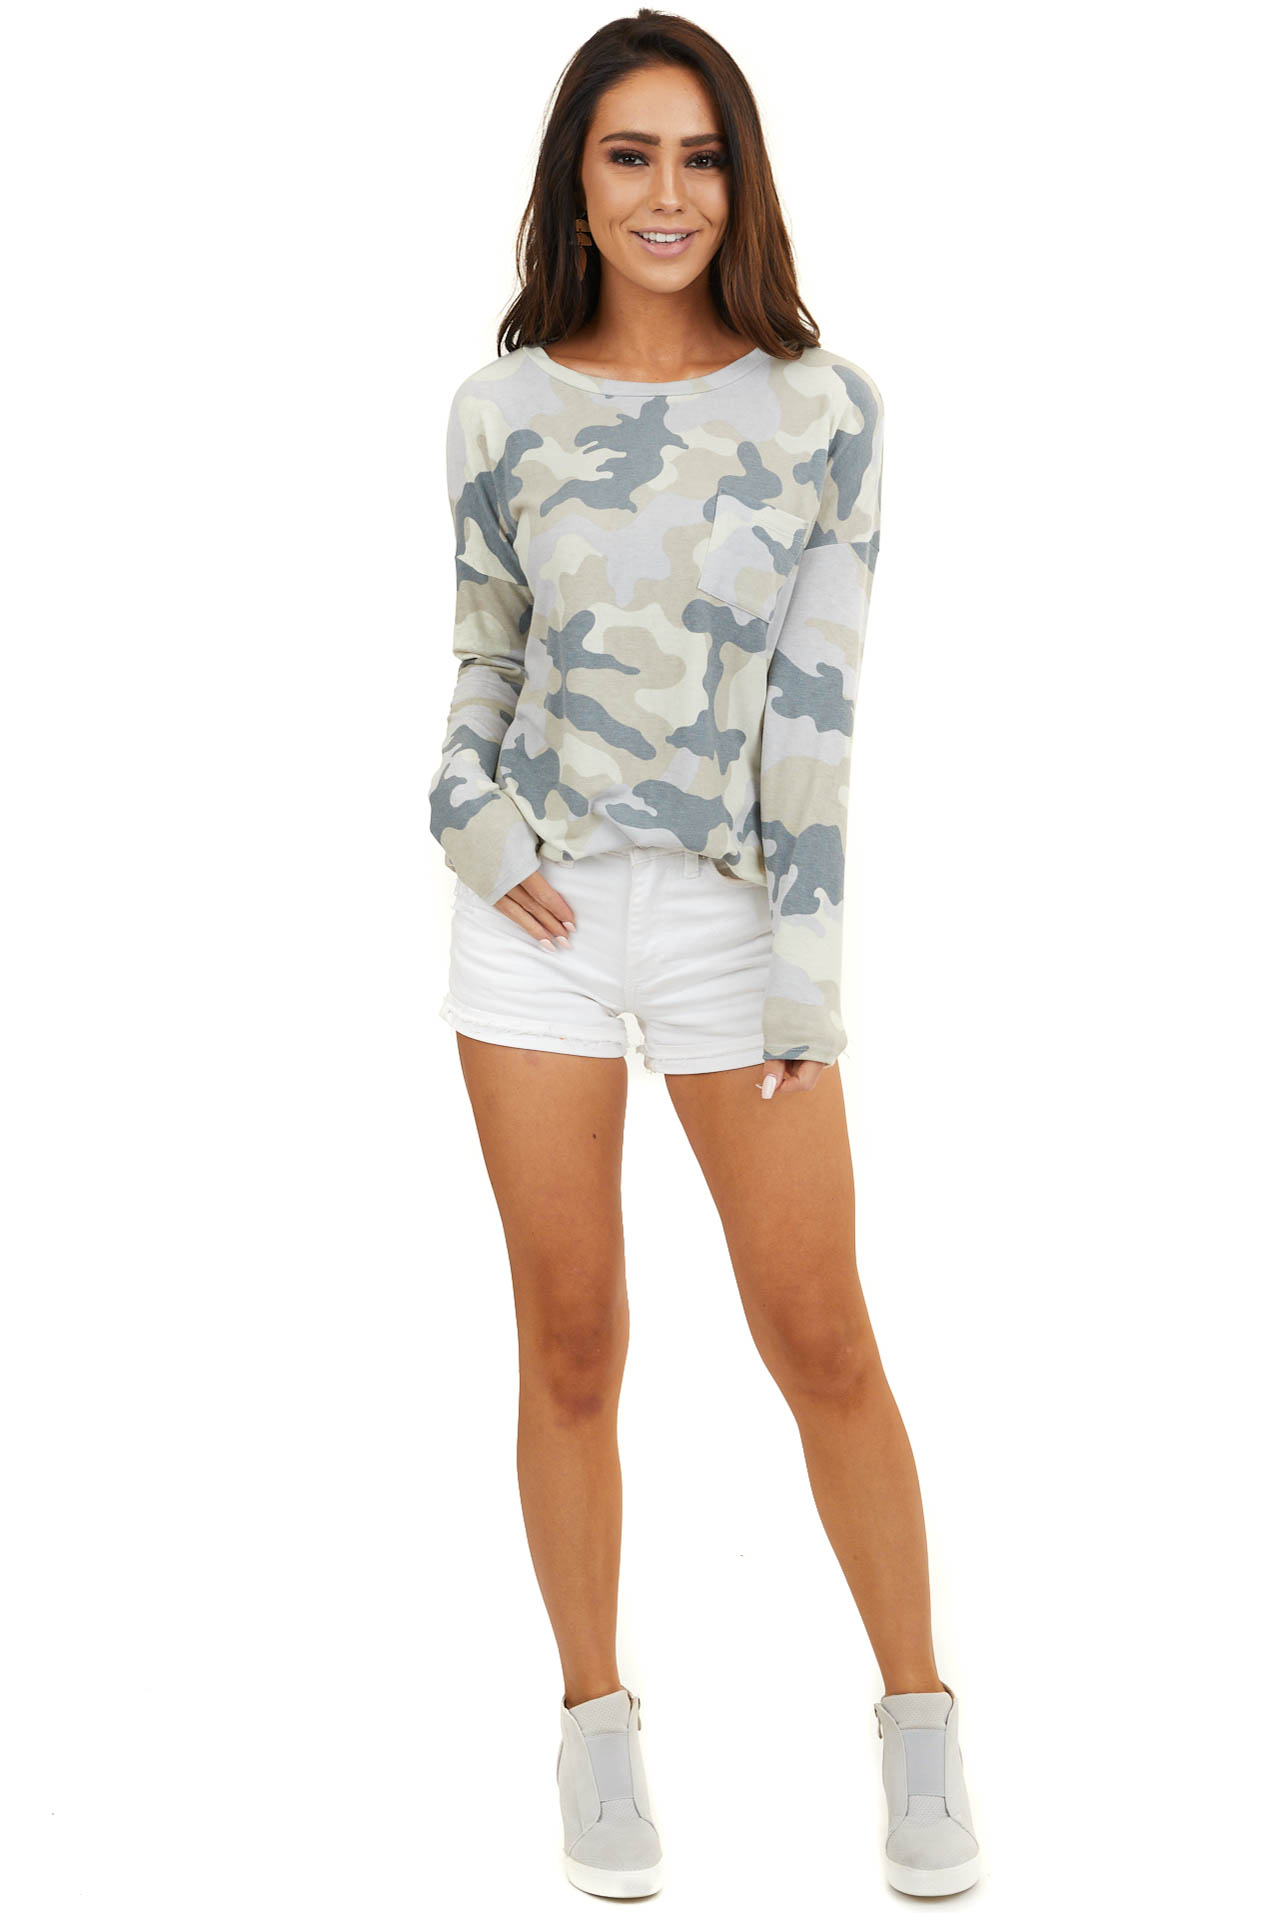 Tan Camo Long Sleeve Knit Top with Front Pocket Detail